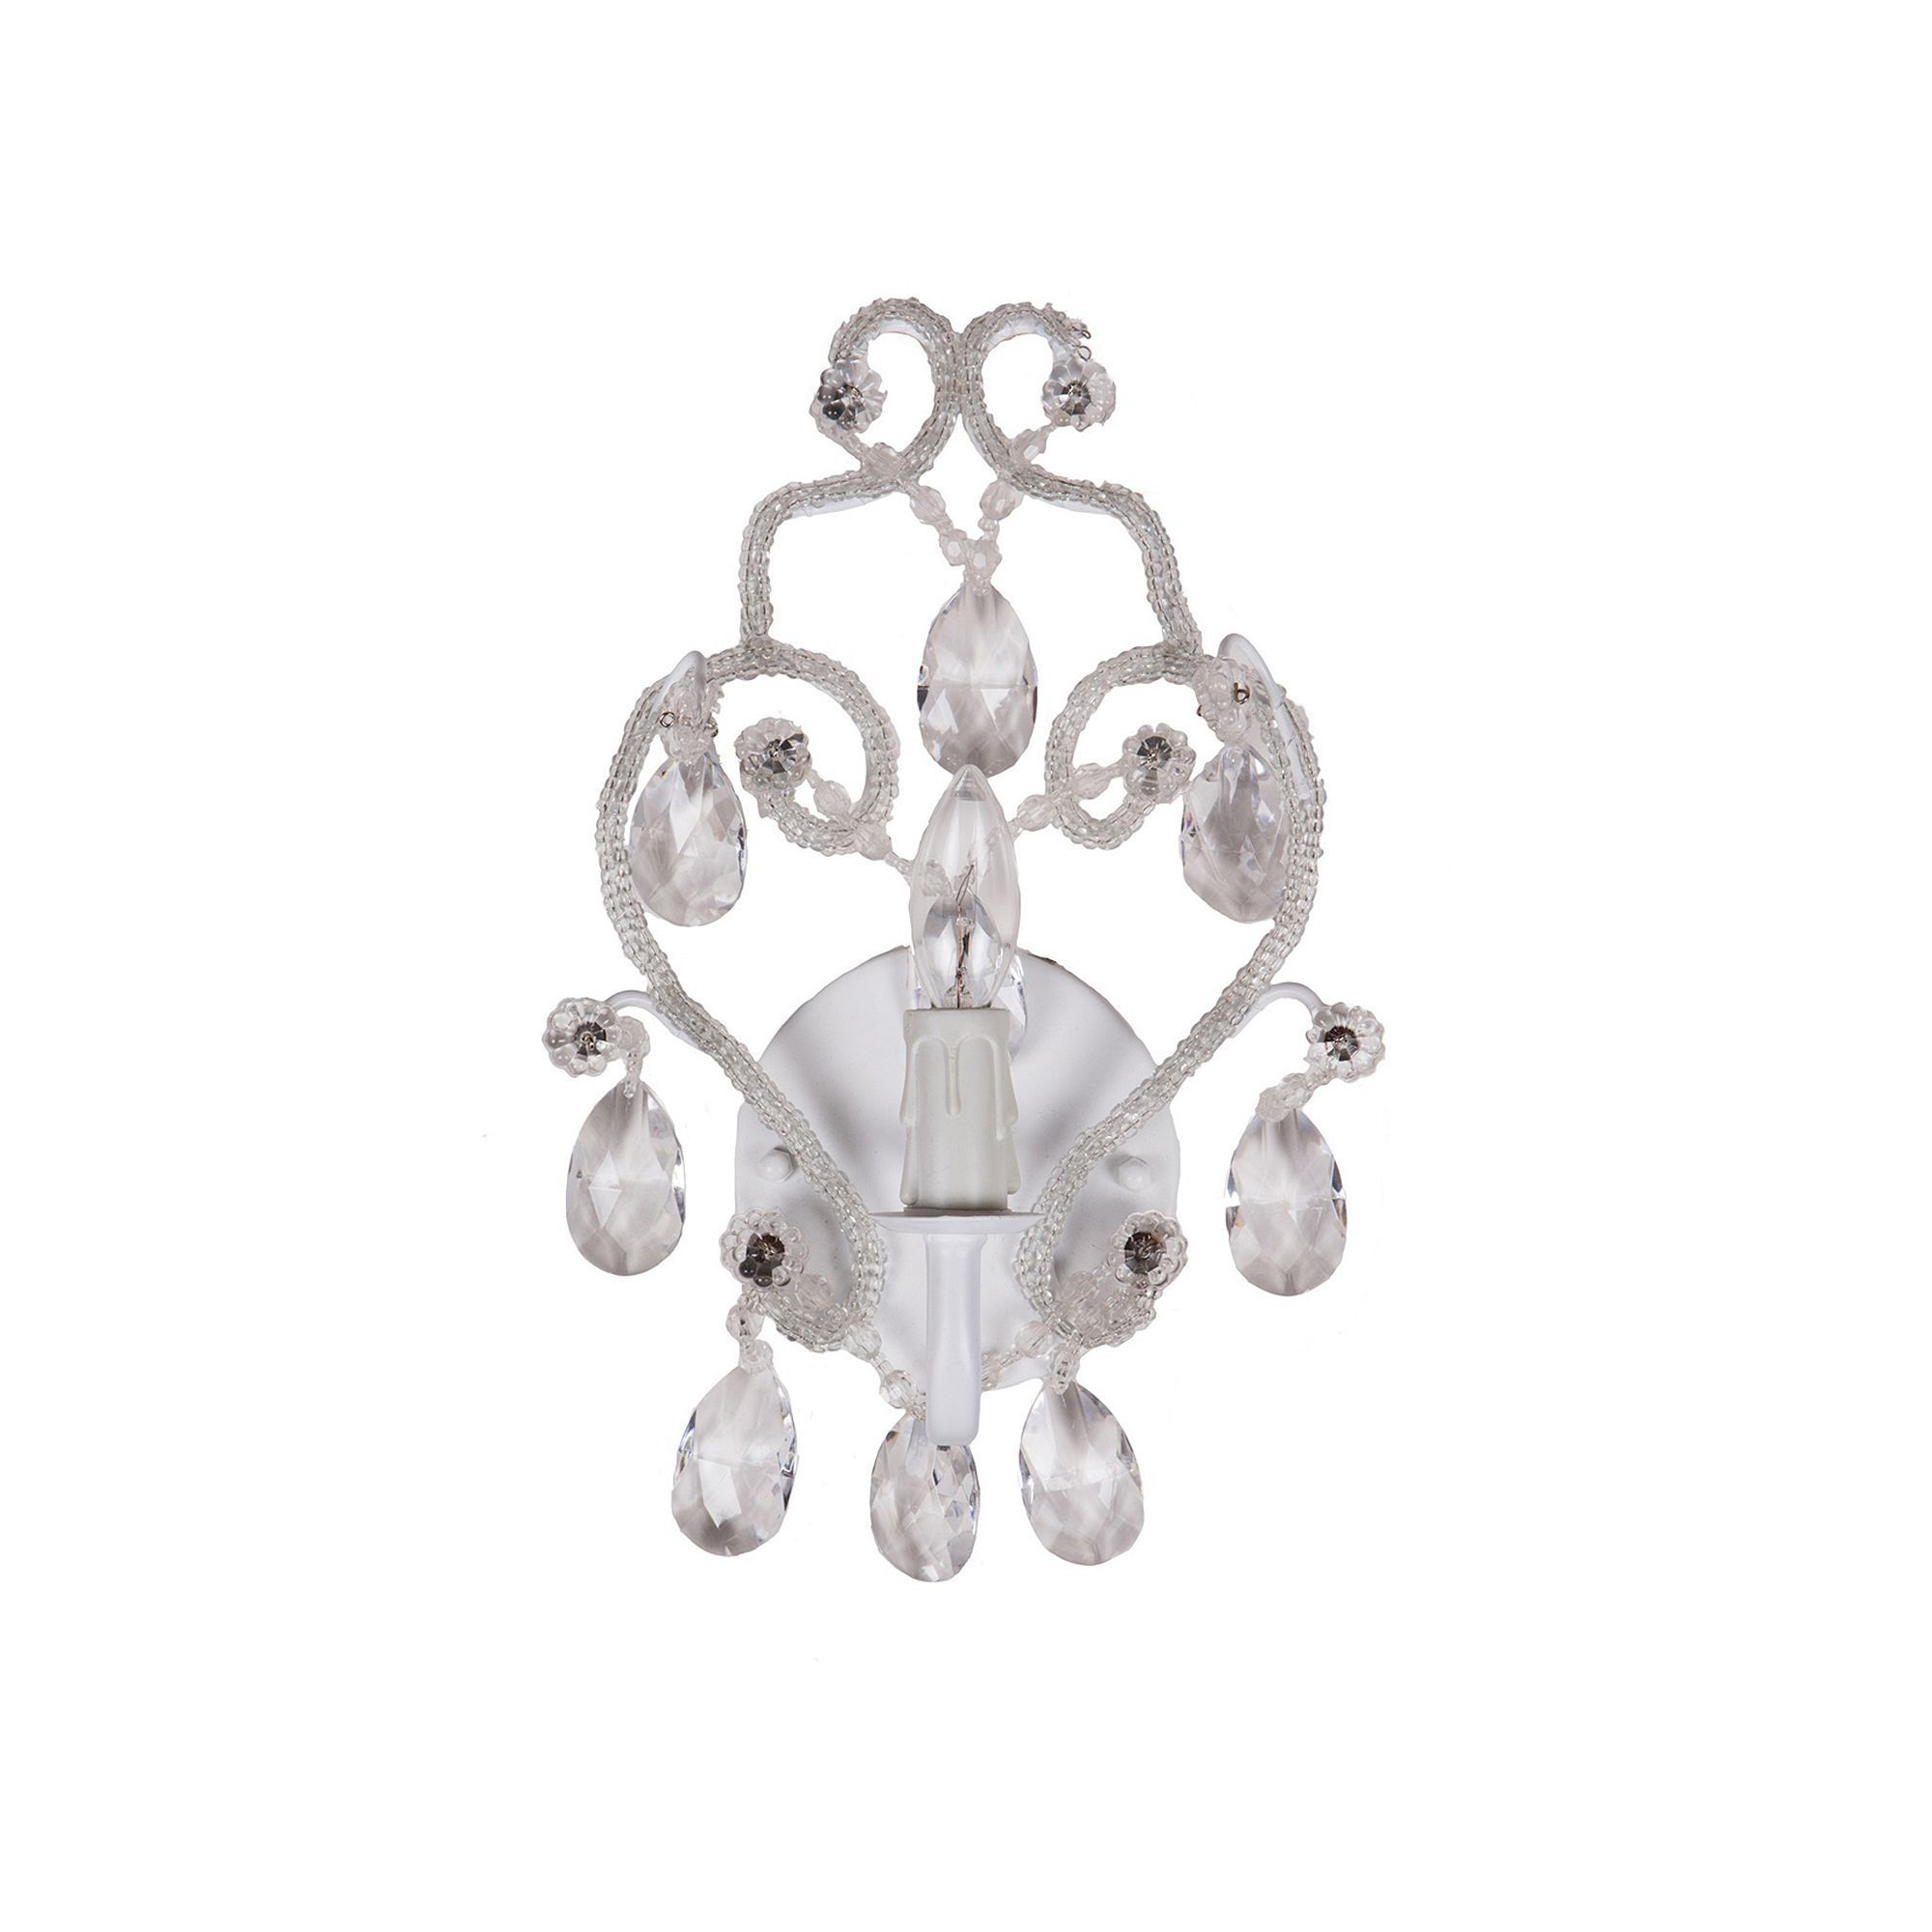 pty swag with crystal room children ivory s retro italian additional plug kids light of soft pink hook baby lighting tadpoles bubble deene ltd interesting chandelier led in